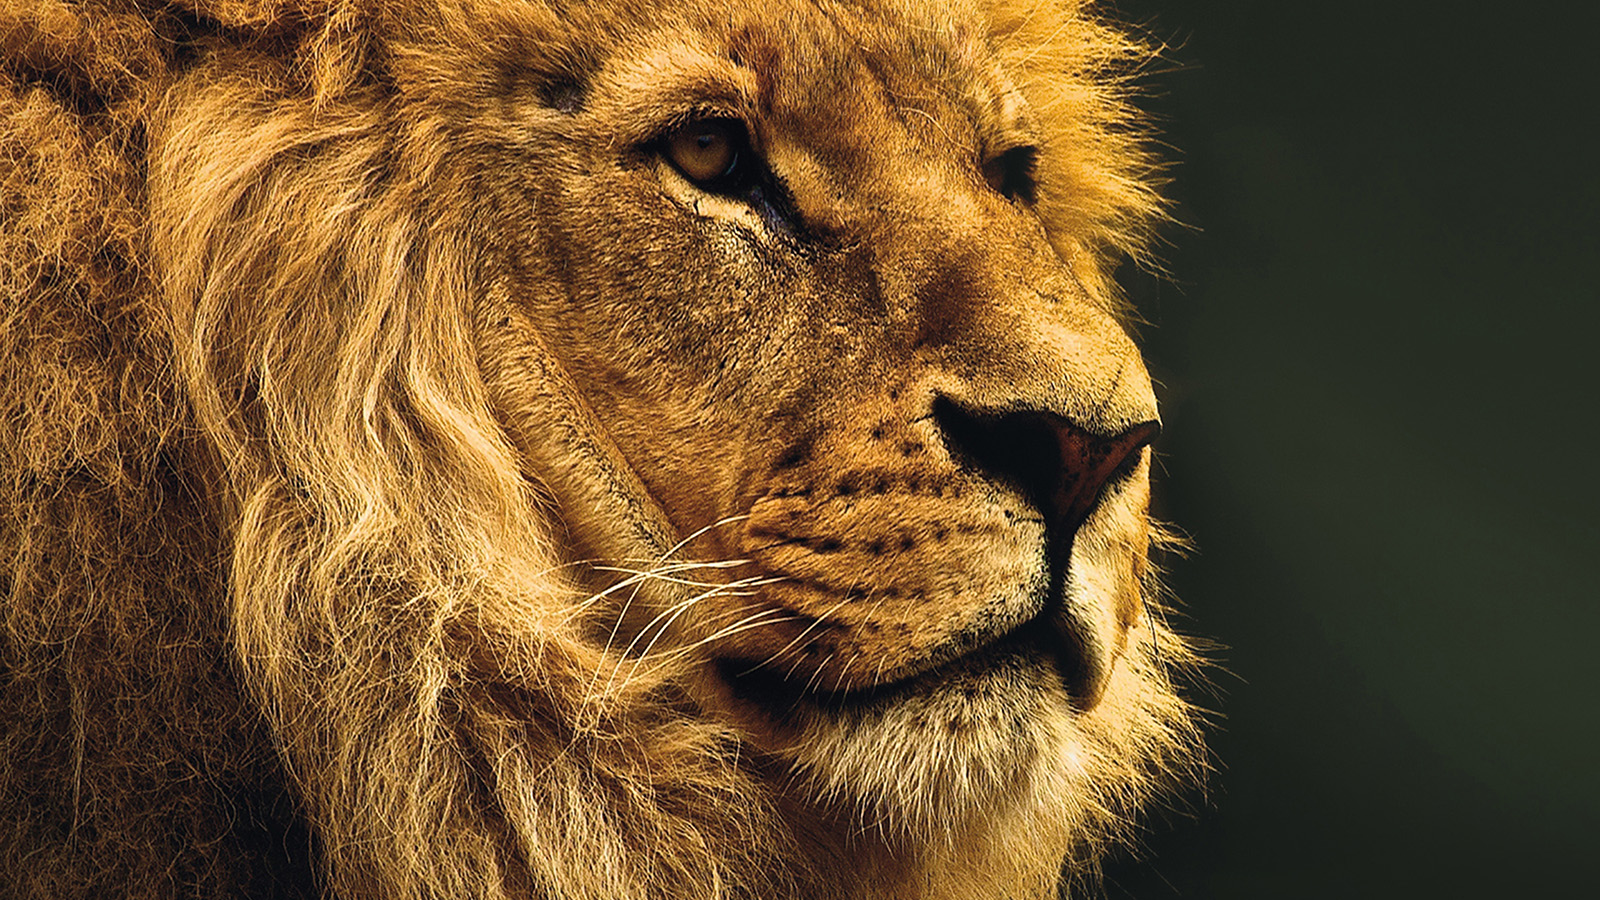 National Geographic Wallpaper Fall Mu49 National Geographic Nature Animal Lion Yellow Wallpaper